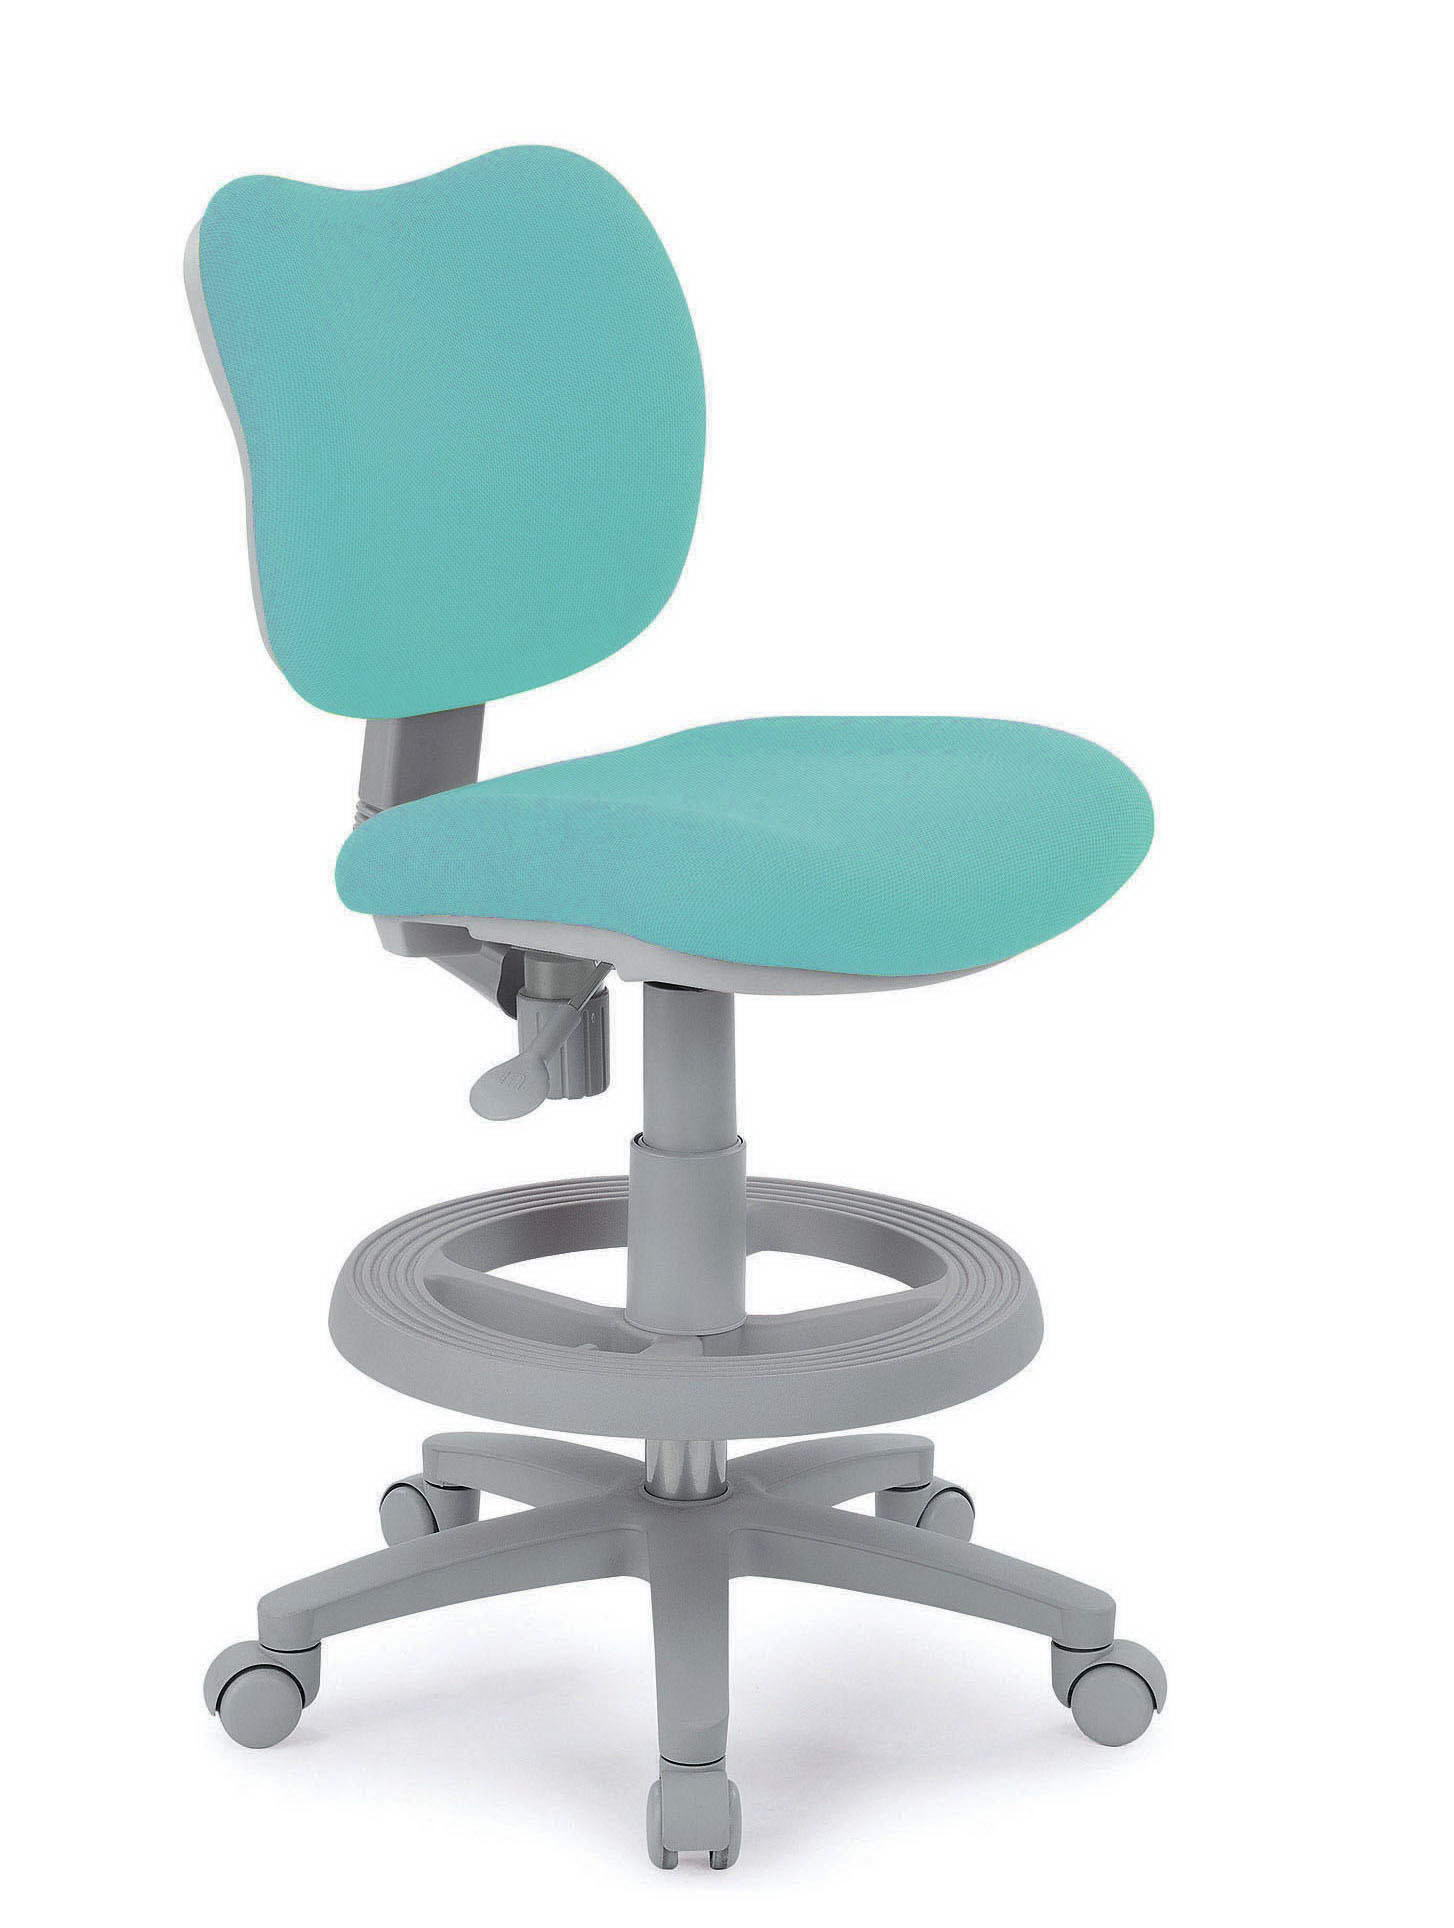 парта-трансформерtct nanotec g6+xs с креслом kids chair и лампой TCT Nanotec G6+XS+кресло Kids Chair+TL20S